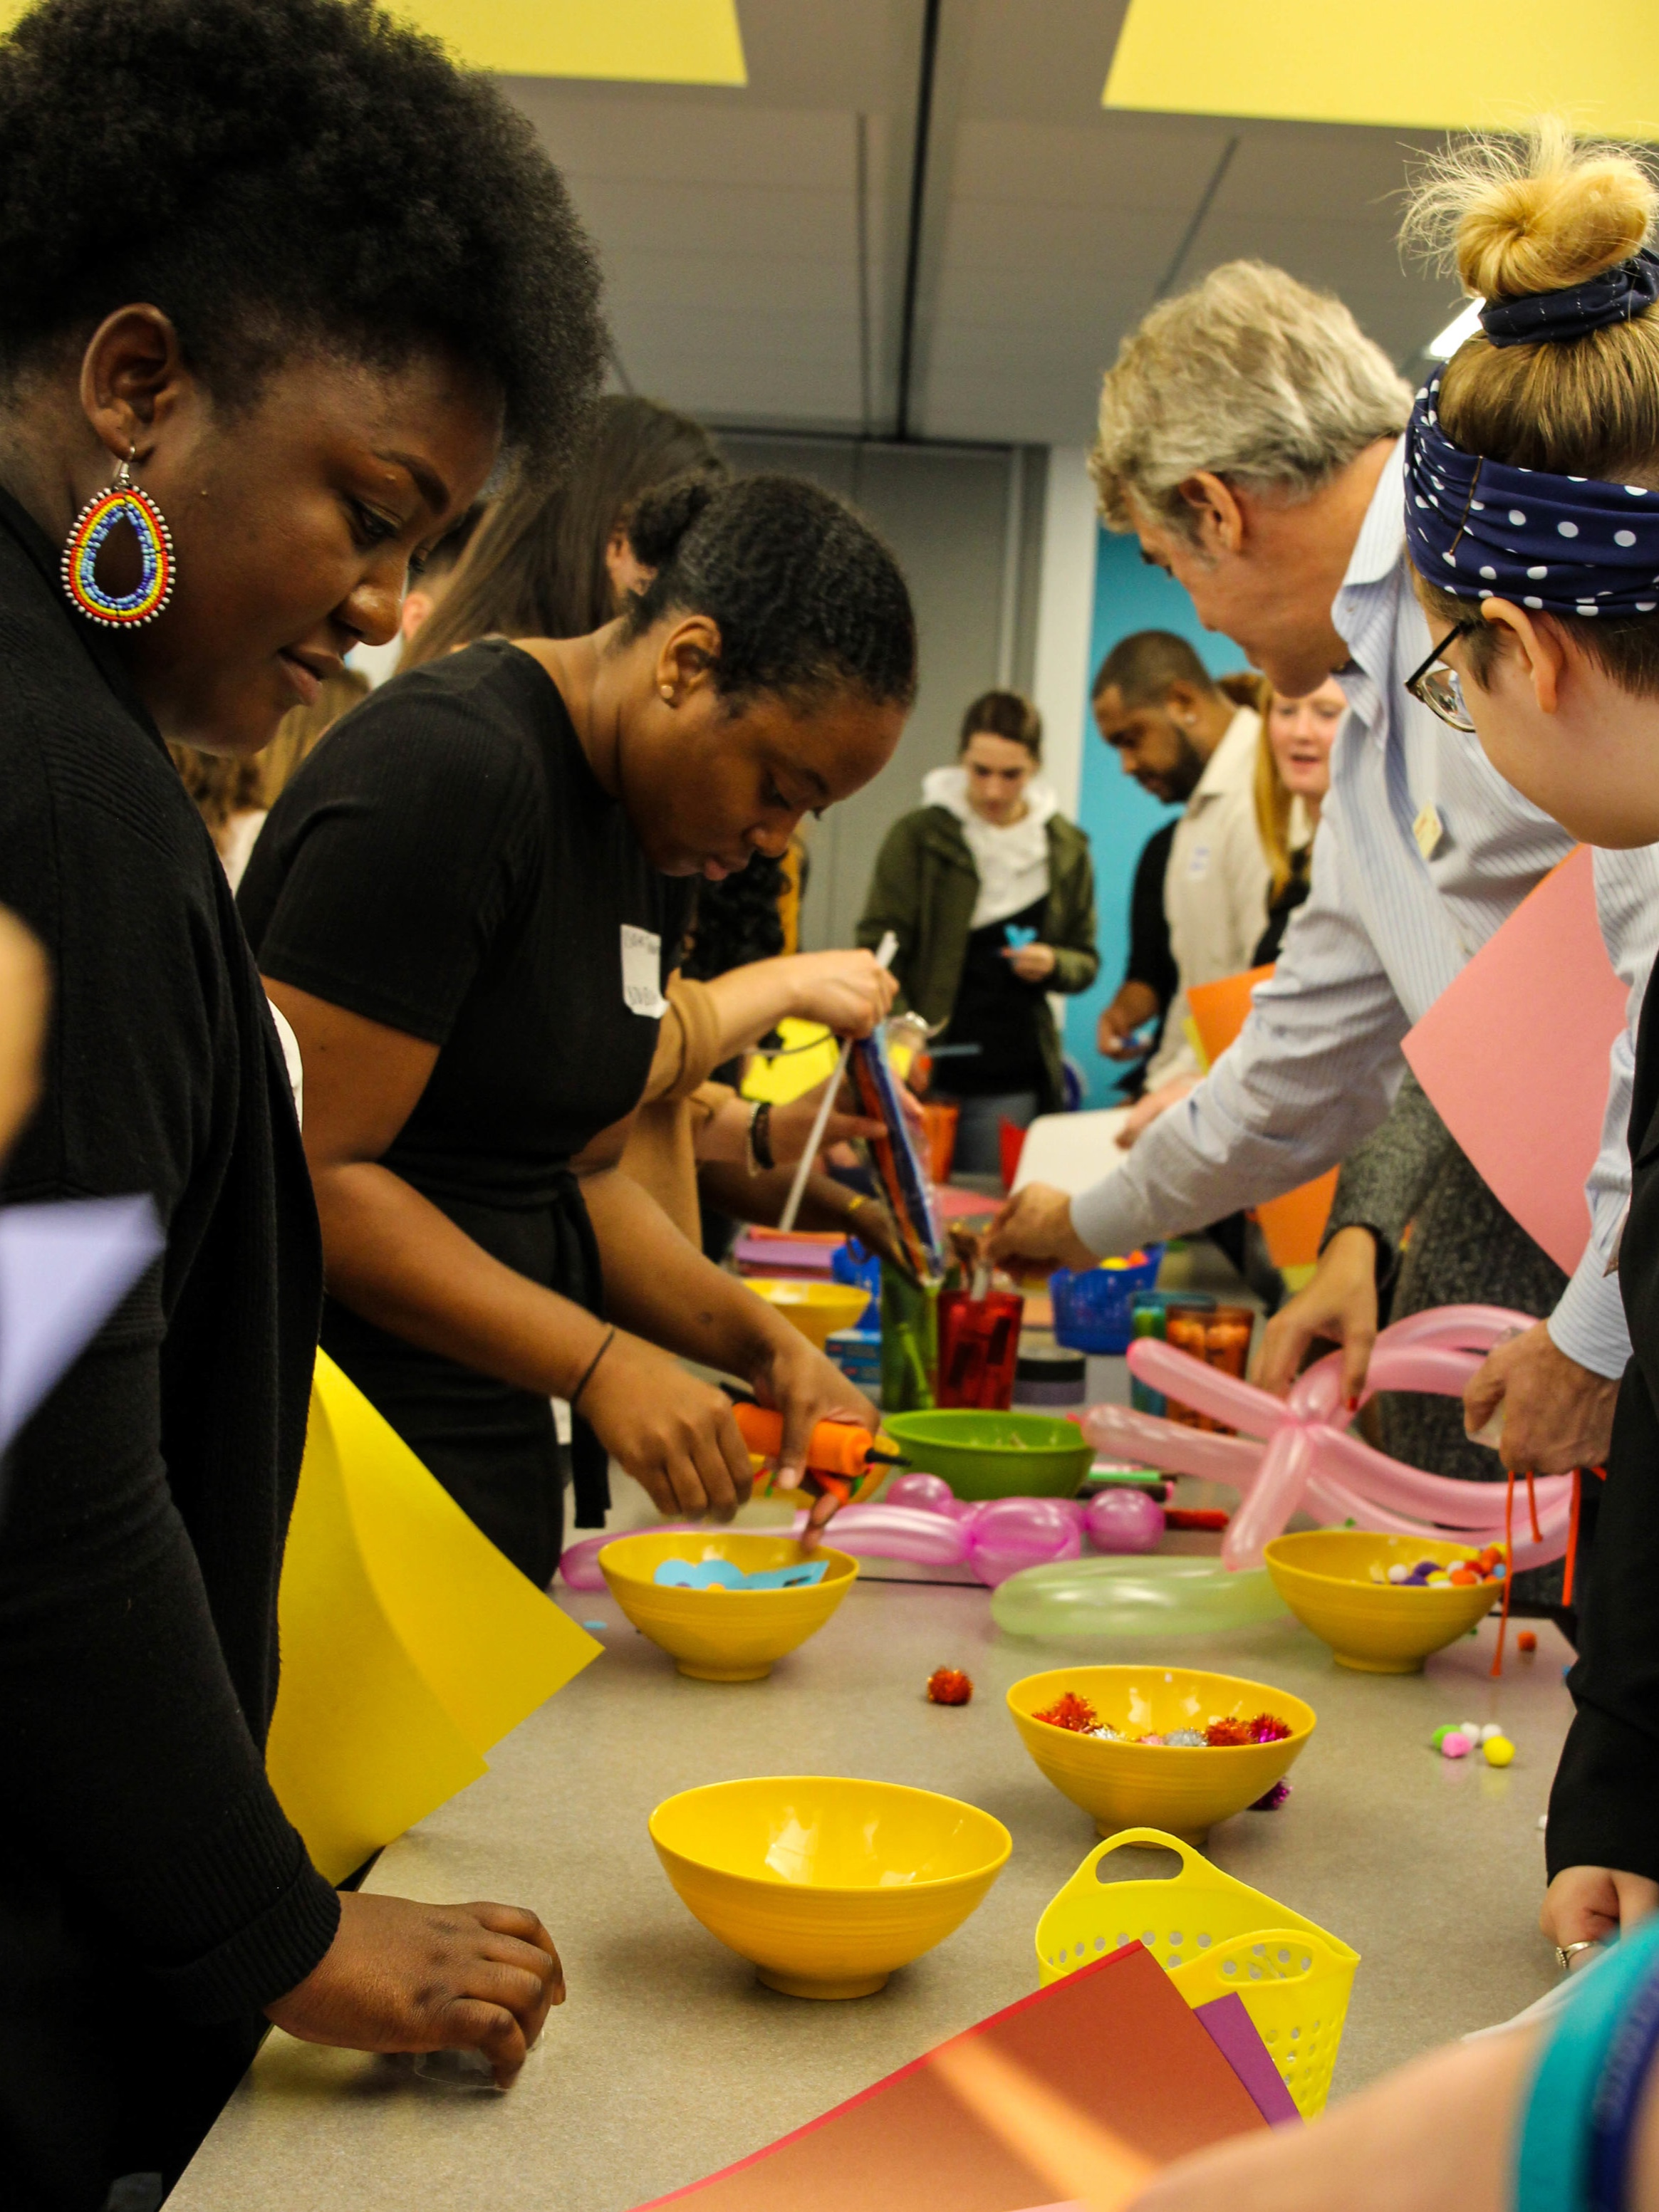 students doing an activity with craft supplies at a table